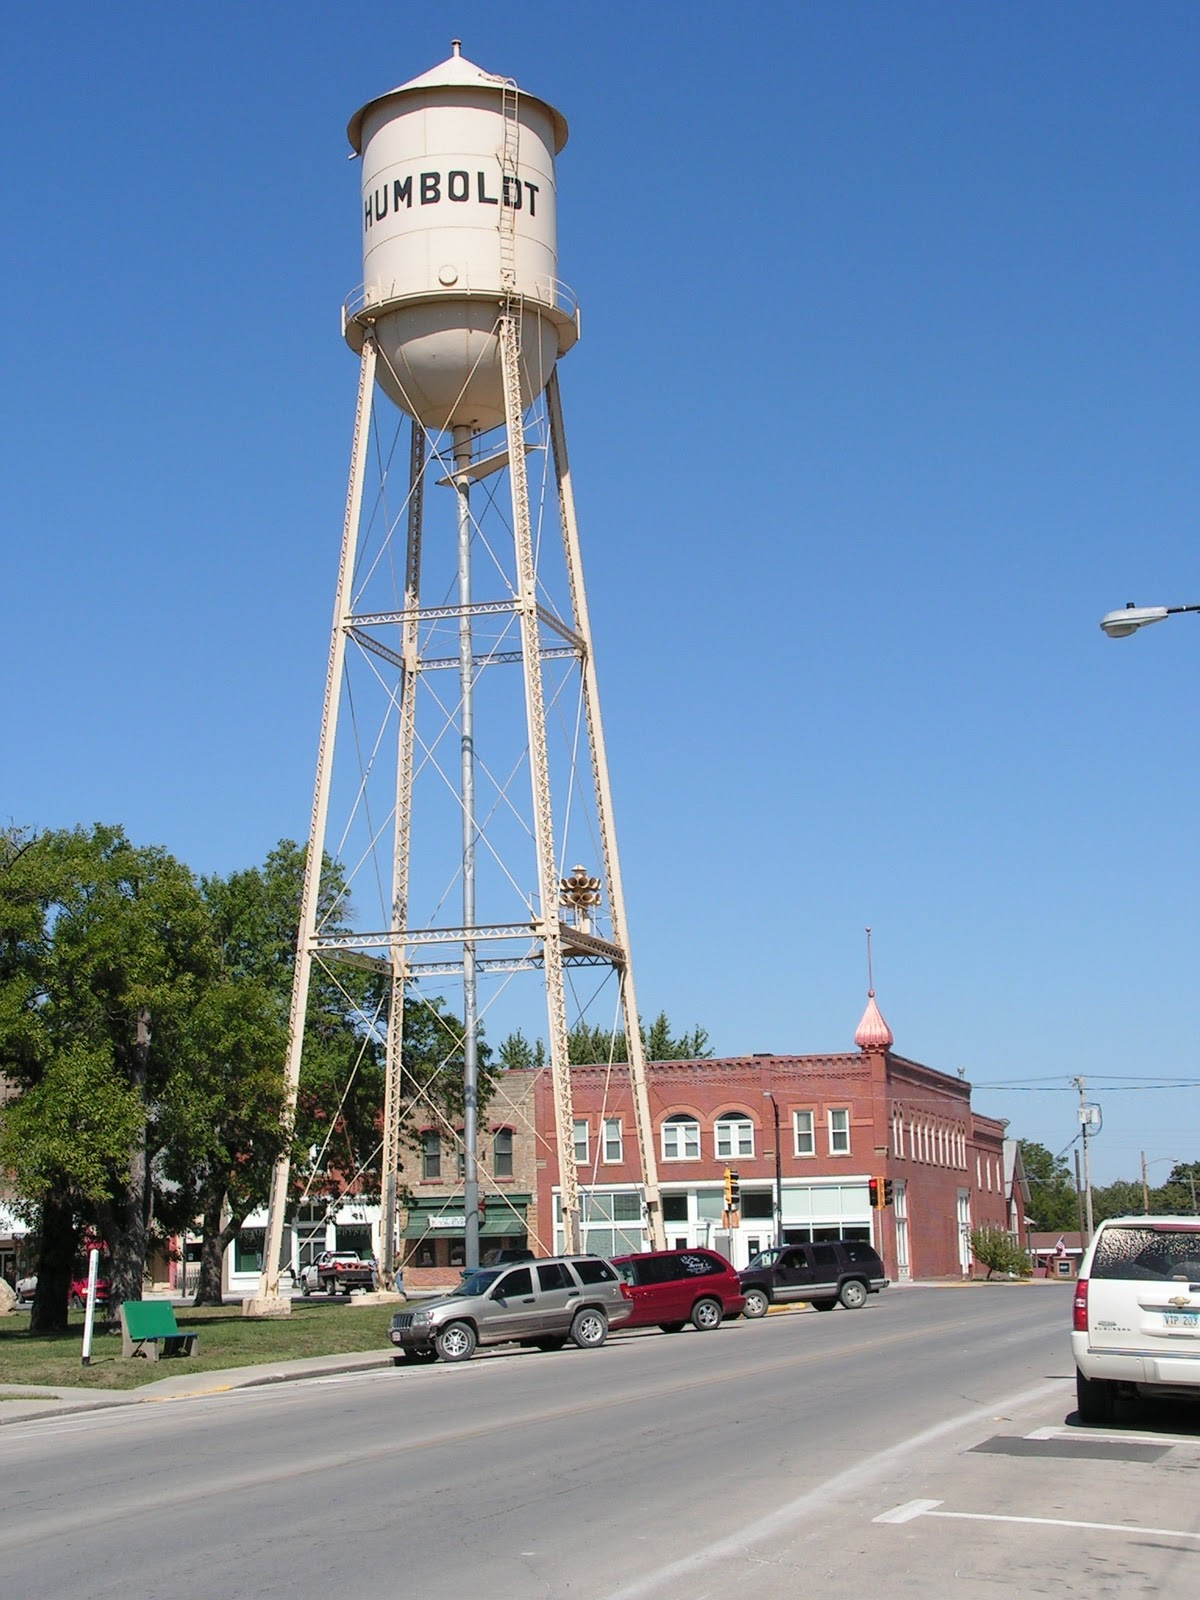 Kansas allen county iola -  Is One Of Those Towns With A Big Water Tower Downtown Sometimes These Structures Are On The Outskirts When I M Driving To A Small Community In Kansas